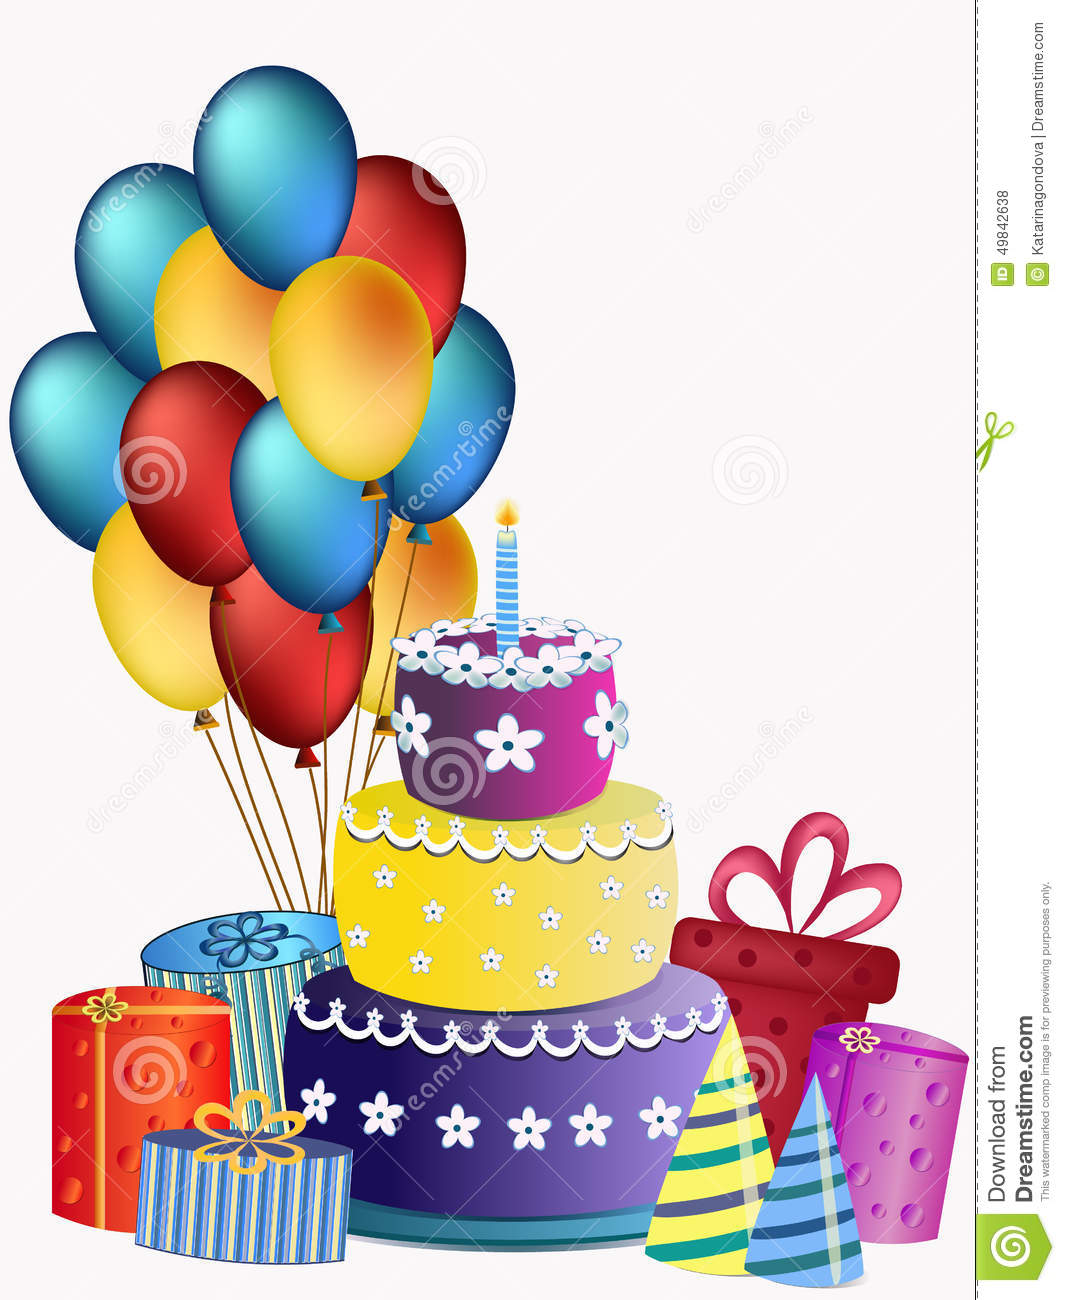 10 Best Happy Birthday Wishes Images With Quotes